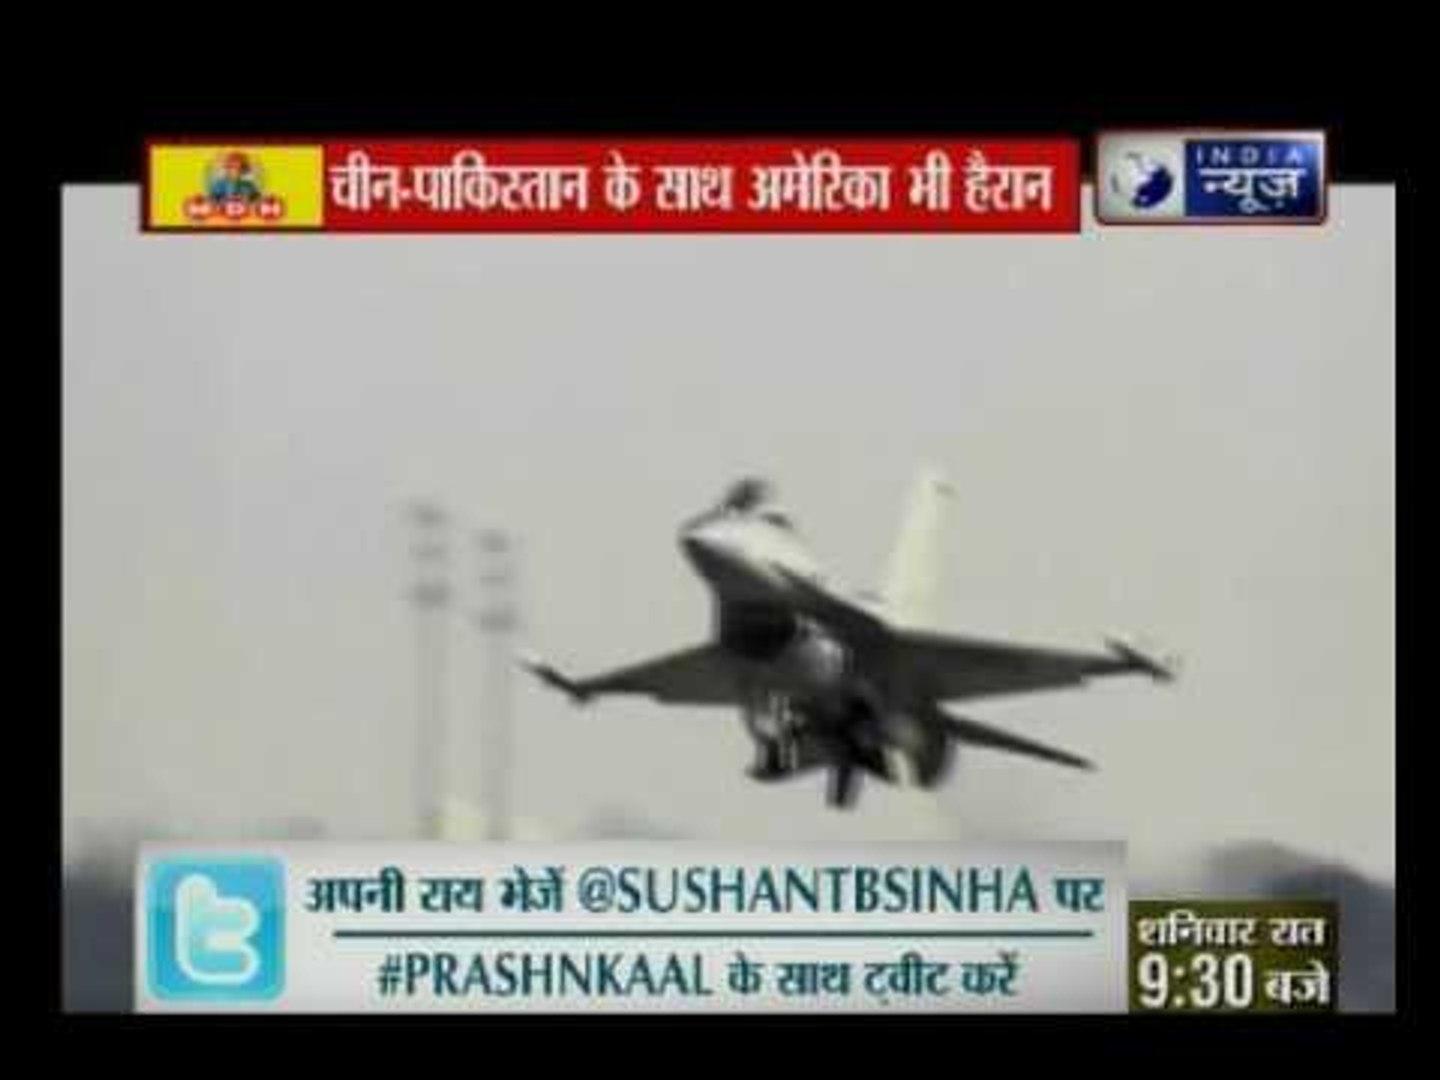 India News show India international relation with China and Pakistan